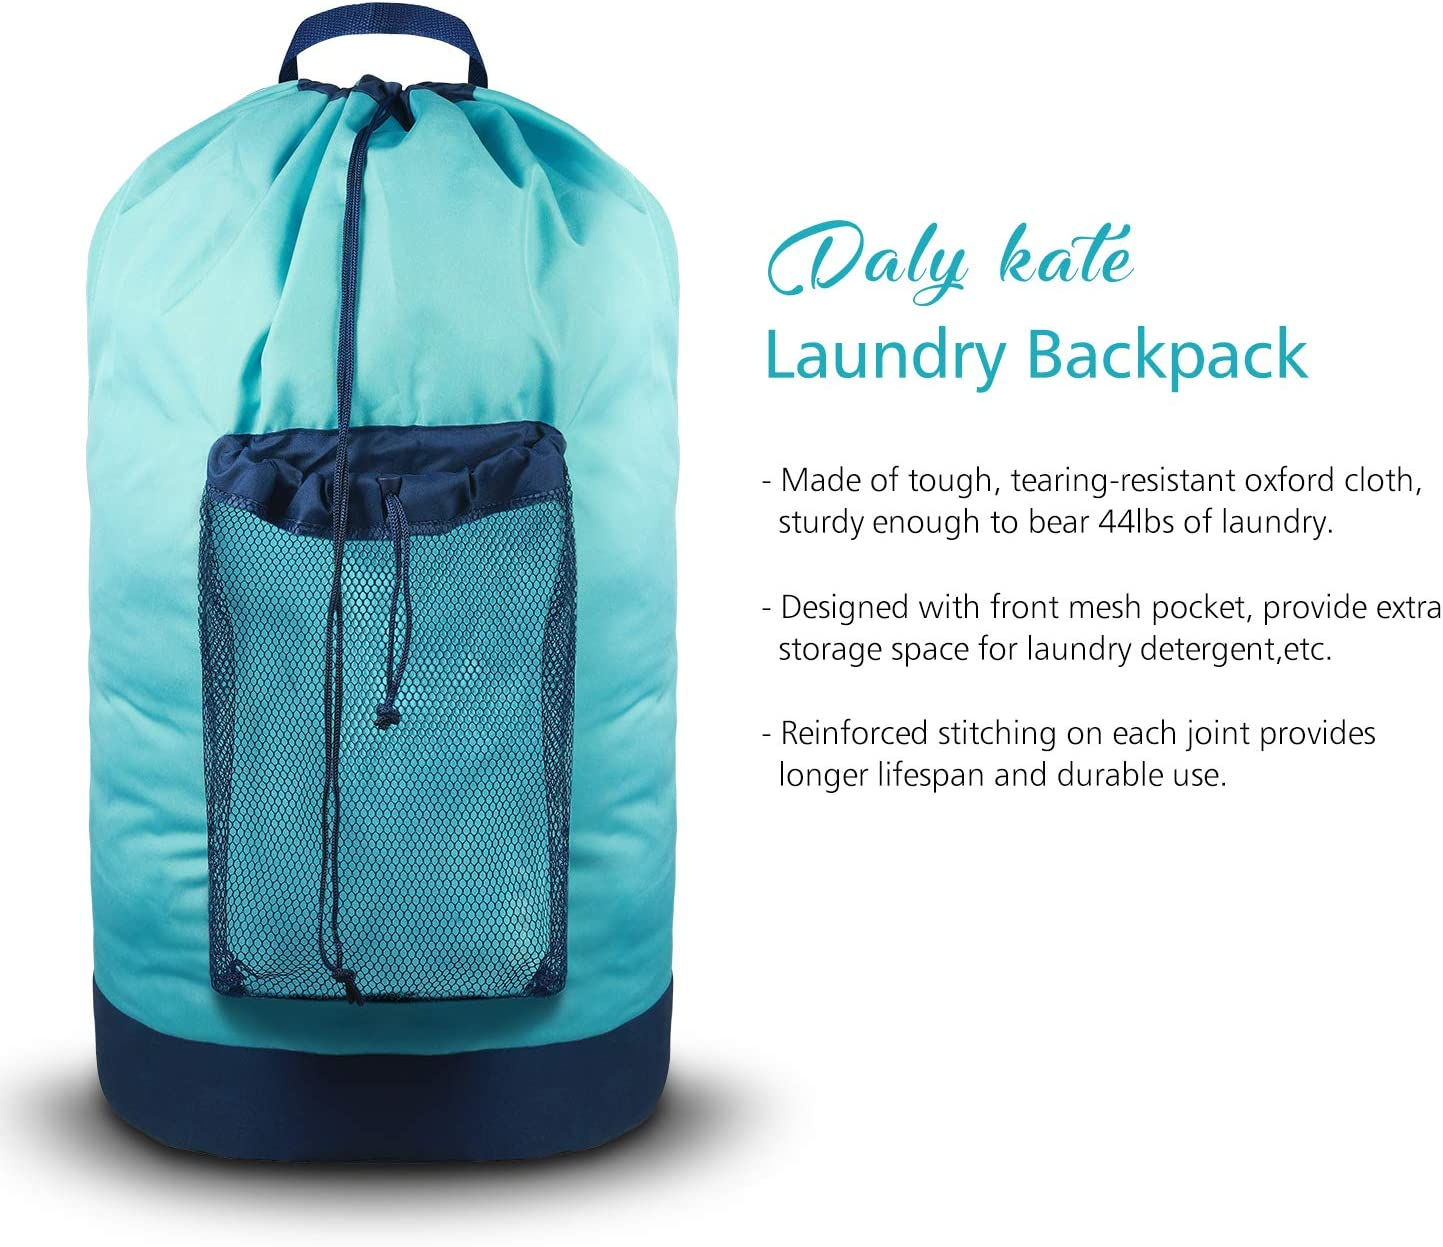 Daly Kate Backpack Laundry Bag, Laundry Backpack with Shoulder Straps and Mesh Pocket Durable Nylon Laundry Washing Backpack with Drawstring Closure